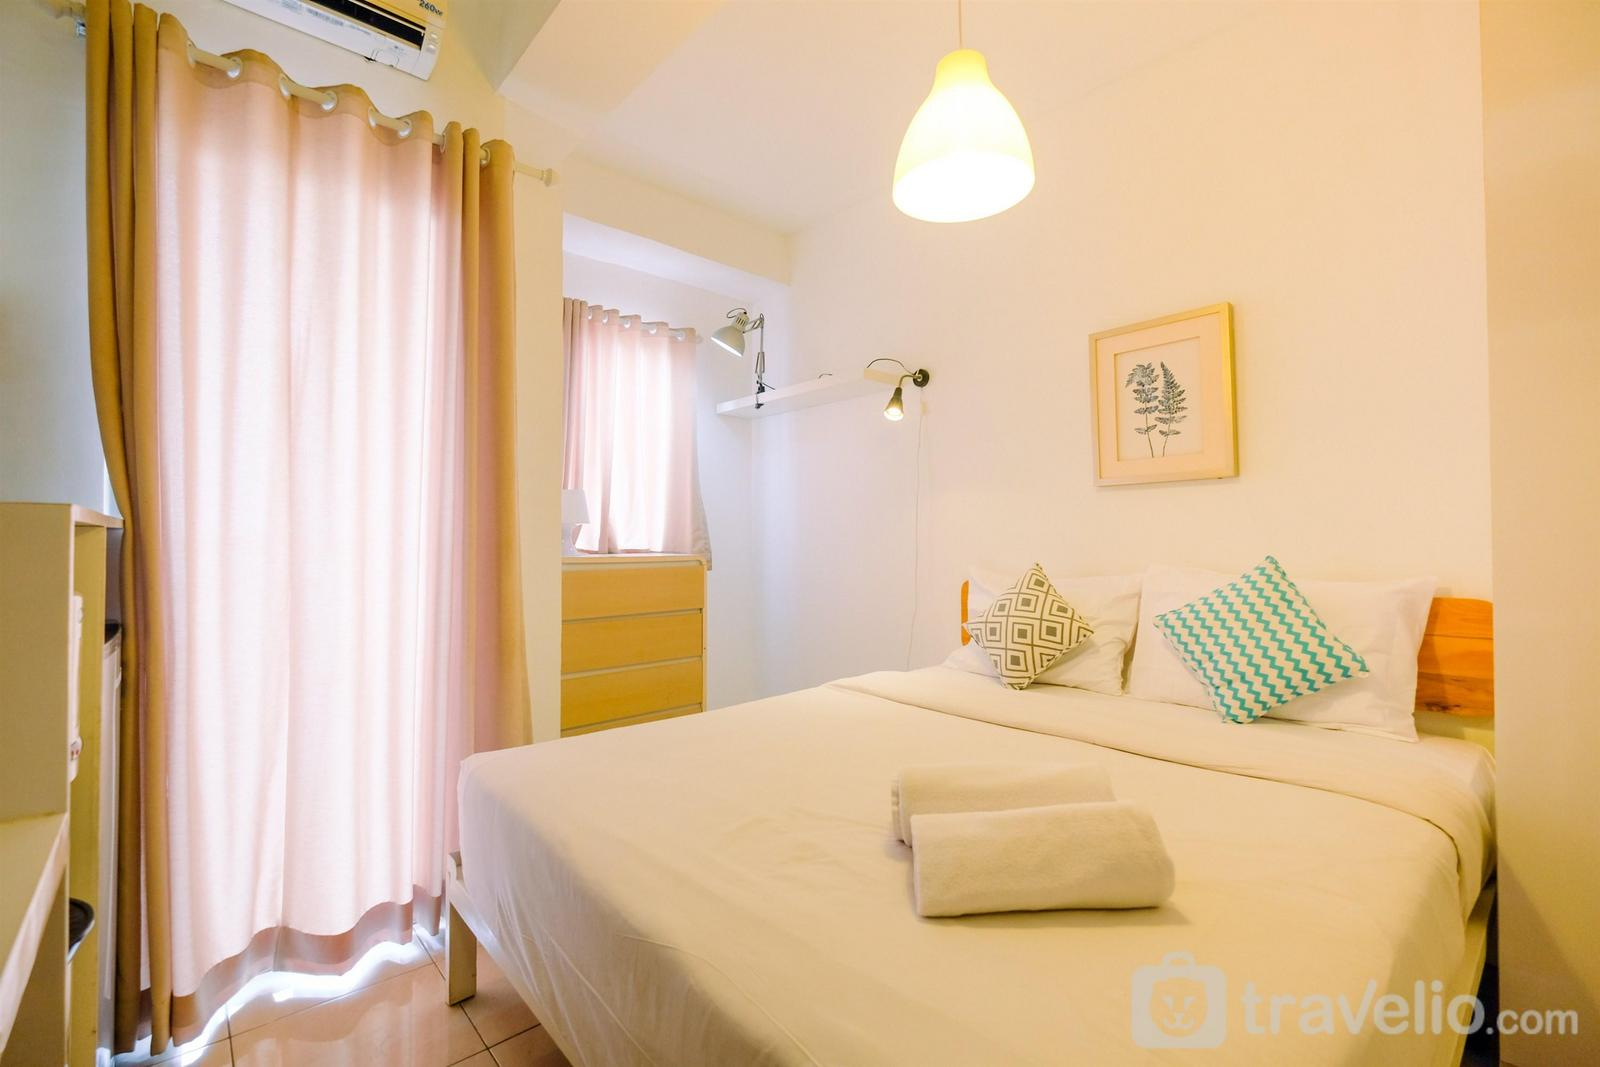 Pakubuwono Terrace Ciledug - Minimalist Studio at Pakubuwono Terrace Apartment By Travelio